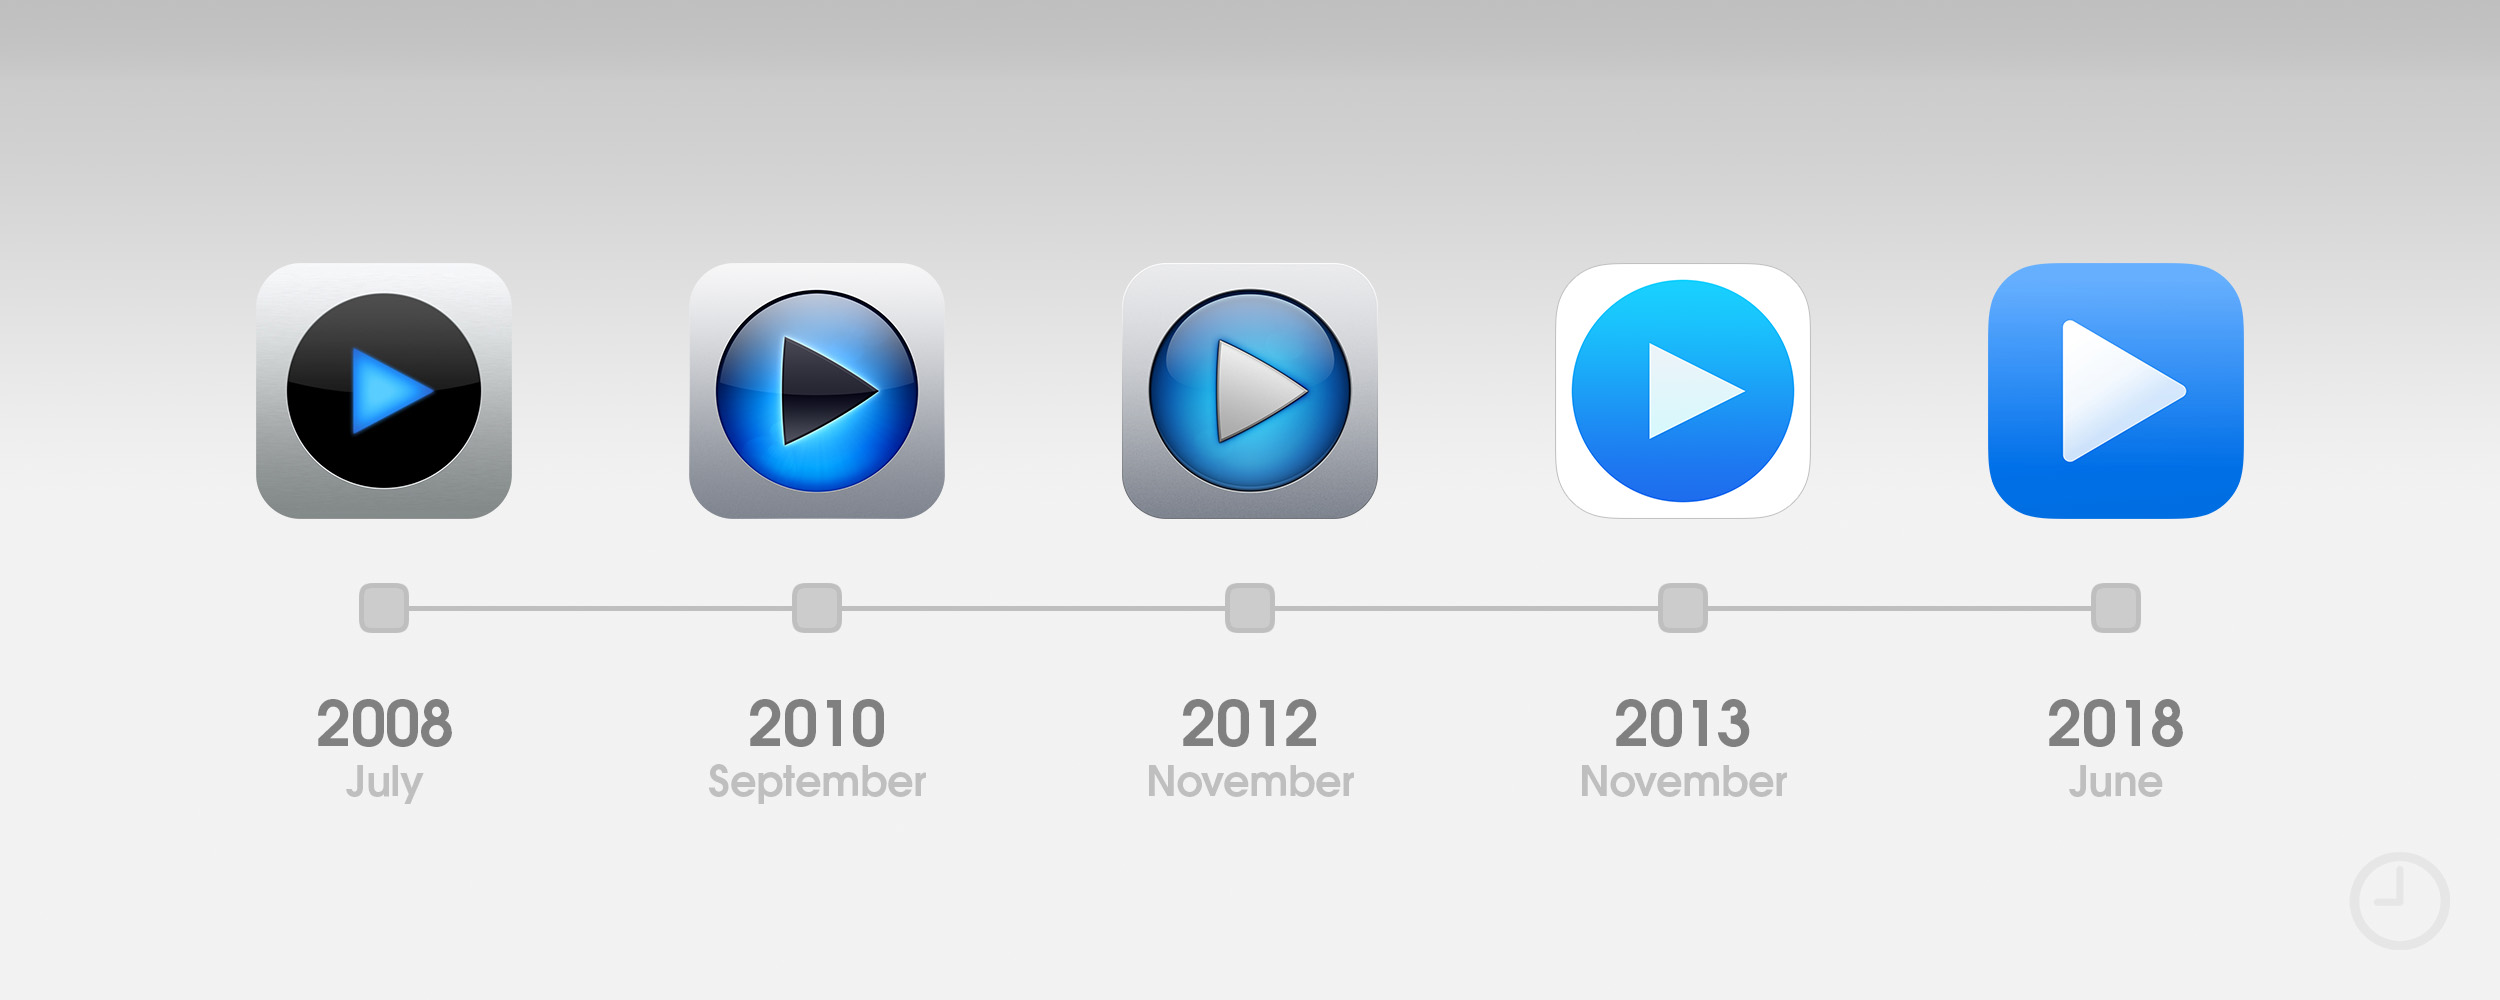 10 years of the app store the design evolution of the earliest apps 9to5mac design evolution of the earliest apps